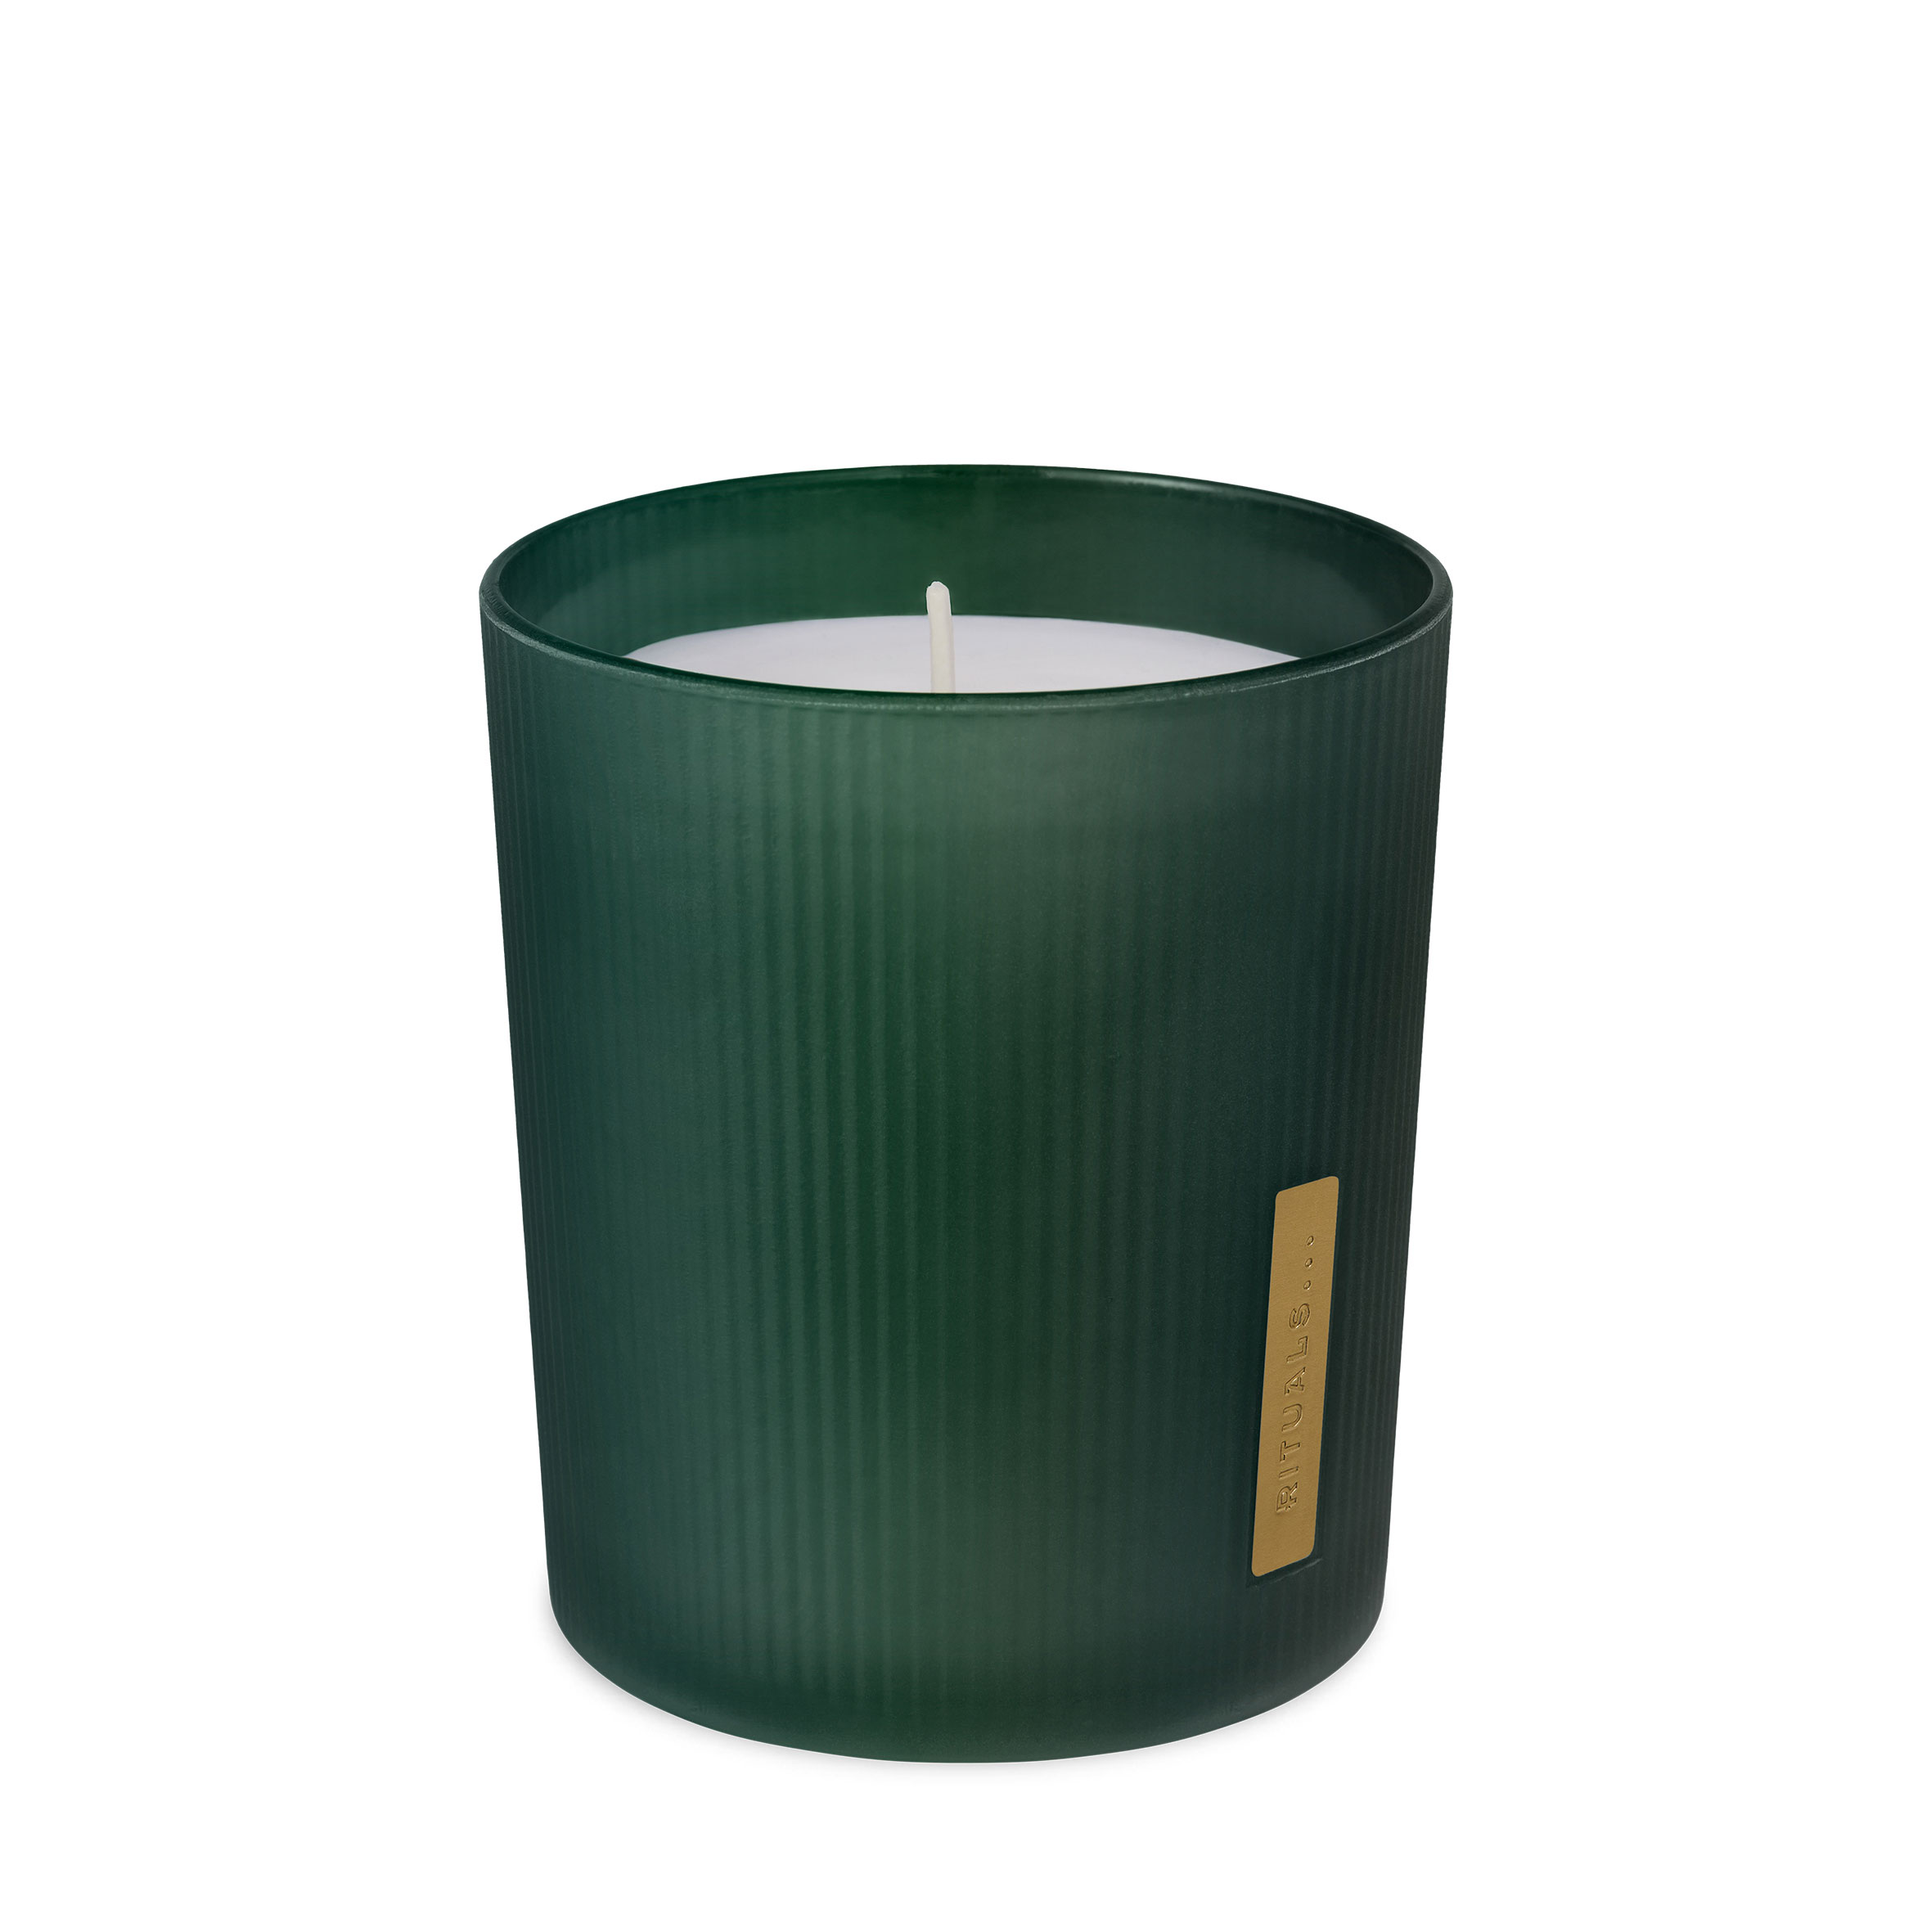 Jing. RITUALS Scented Candle vela aromática 0